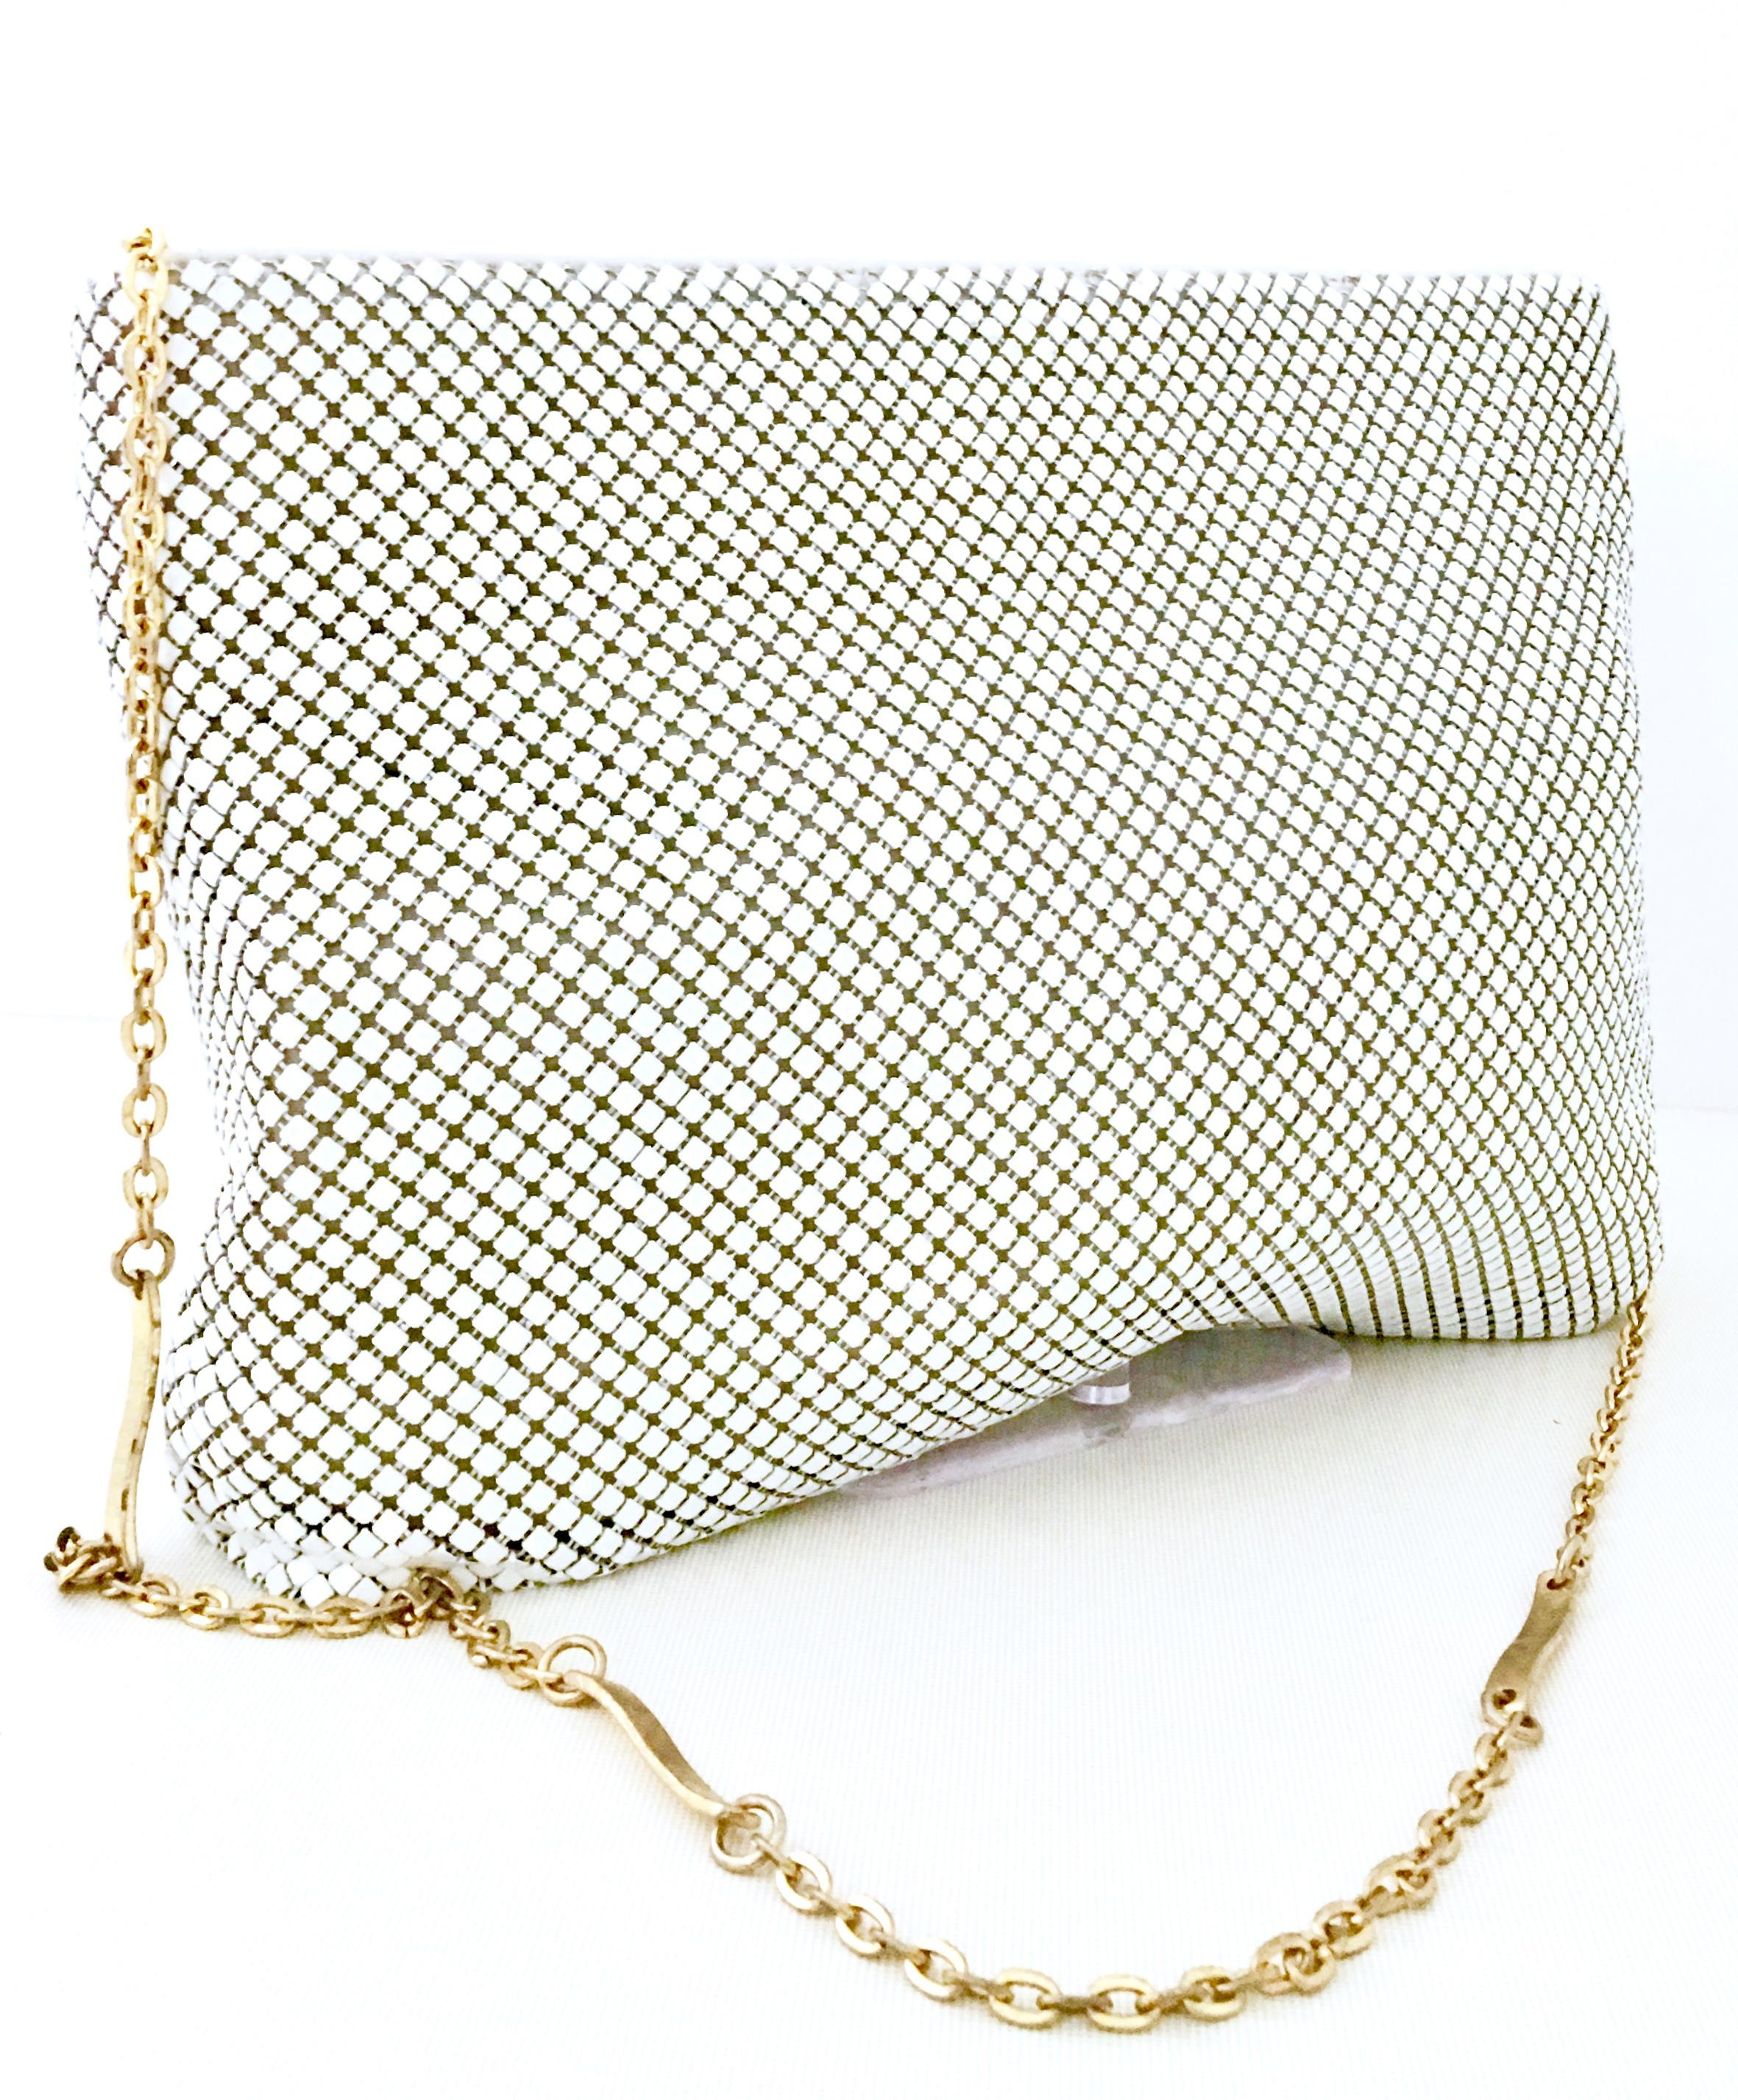 70 S Whiting And Davis White Metal Mesh Gold Chain Link